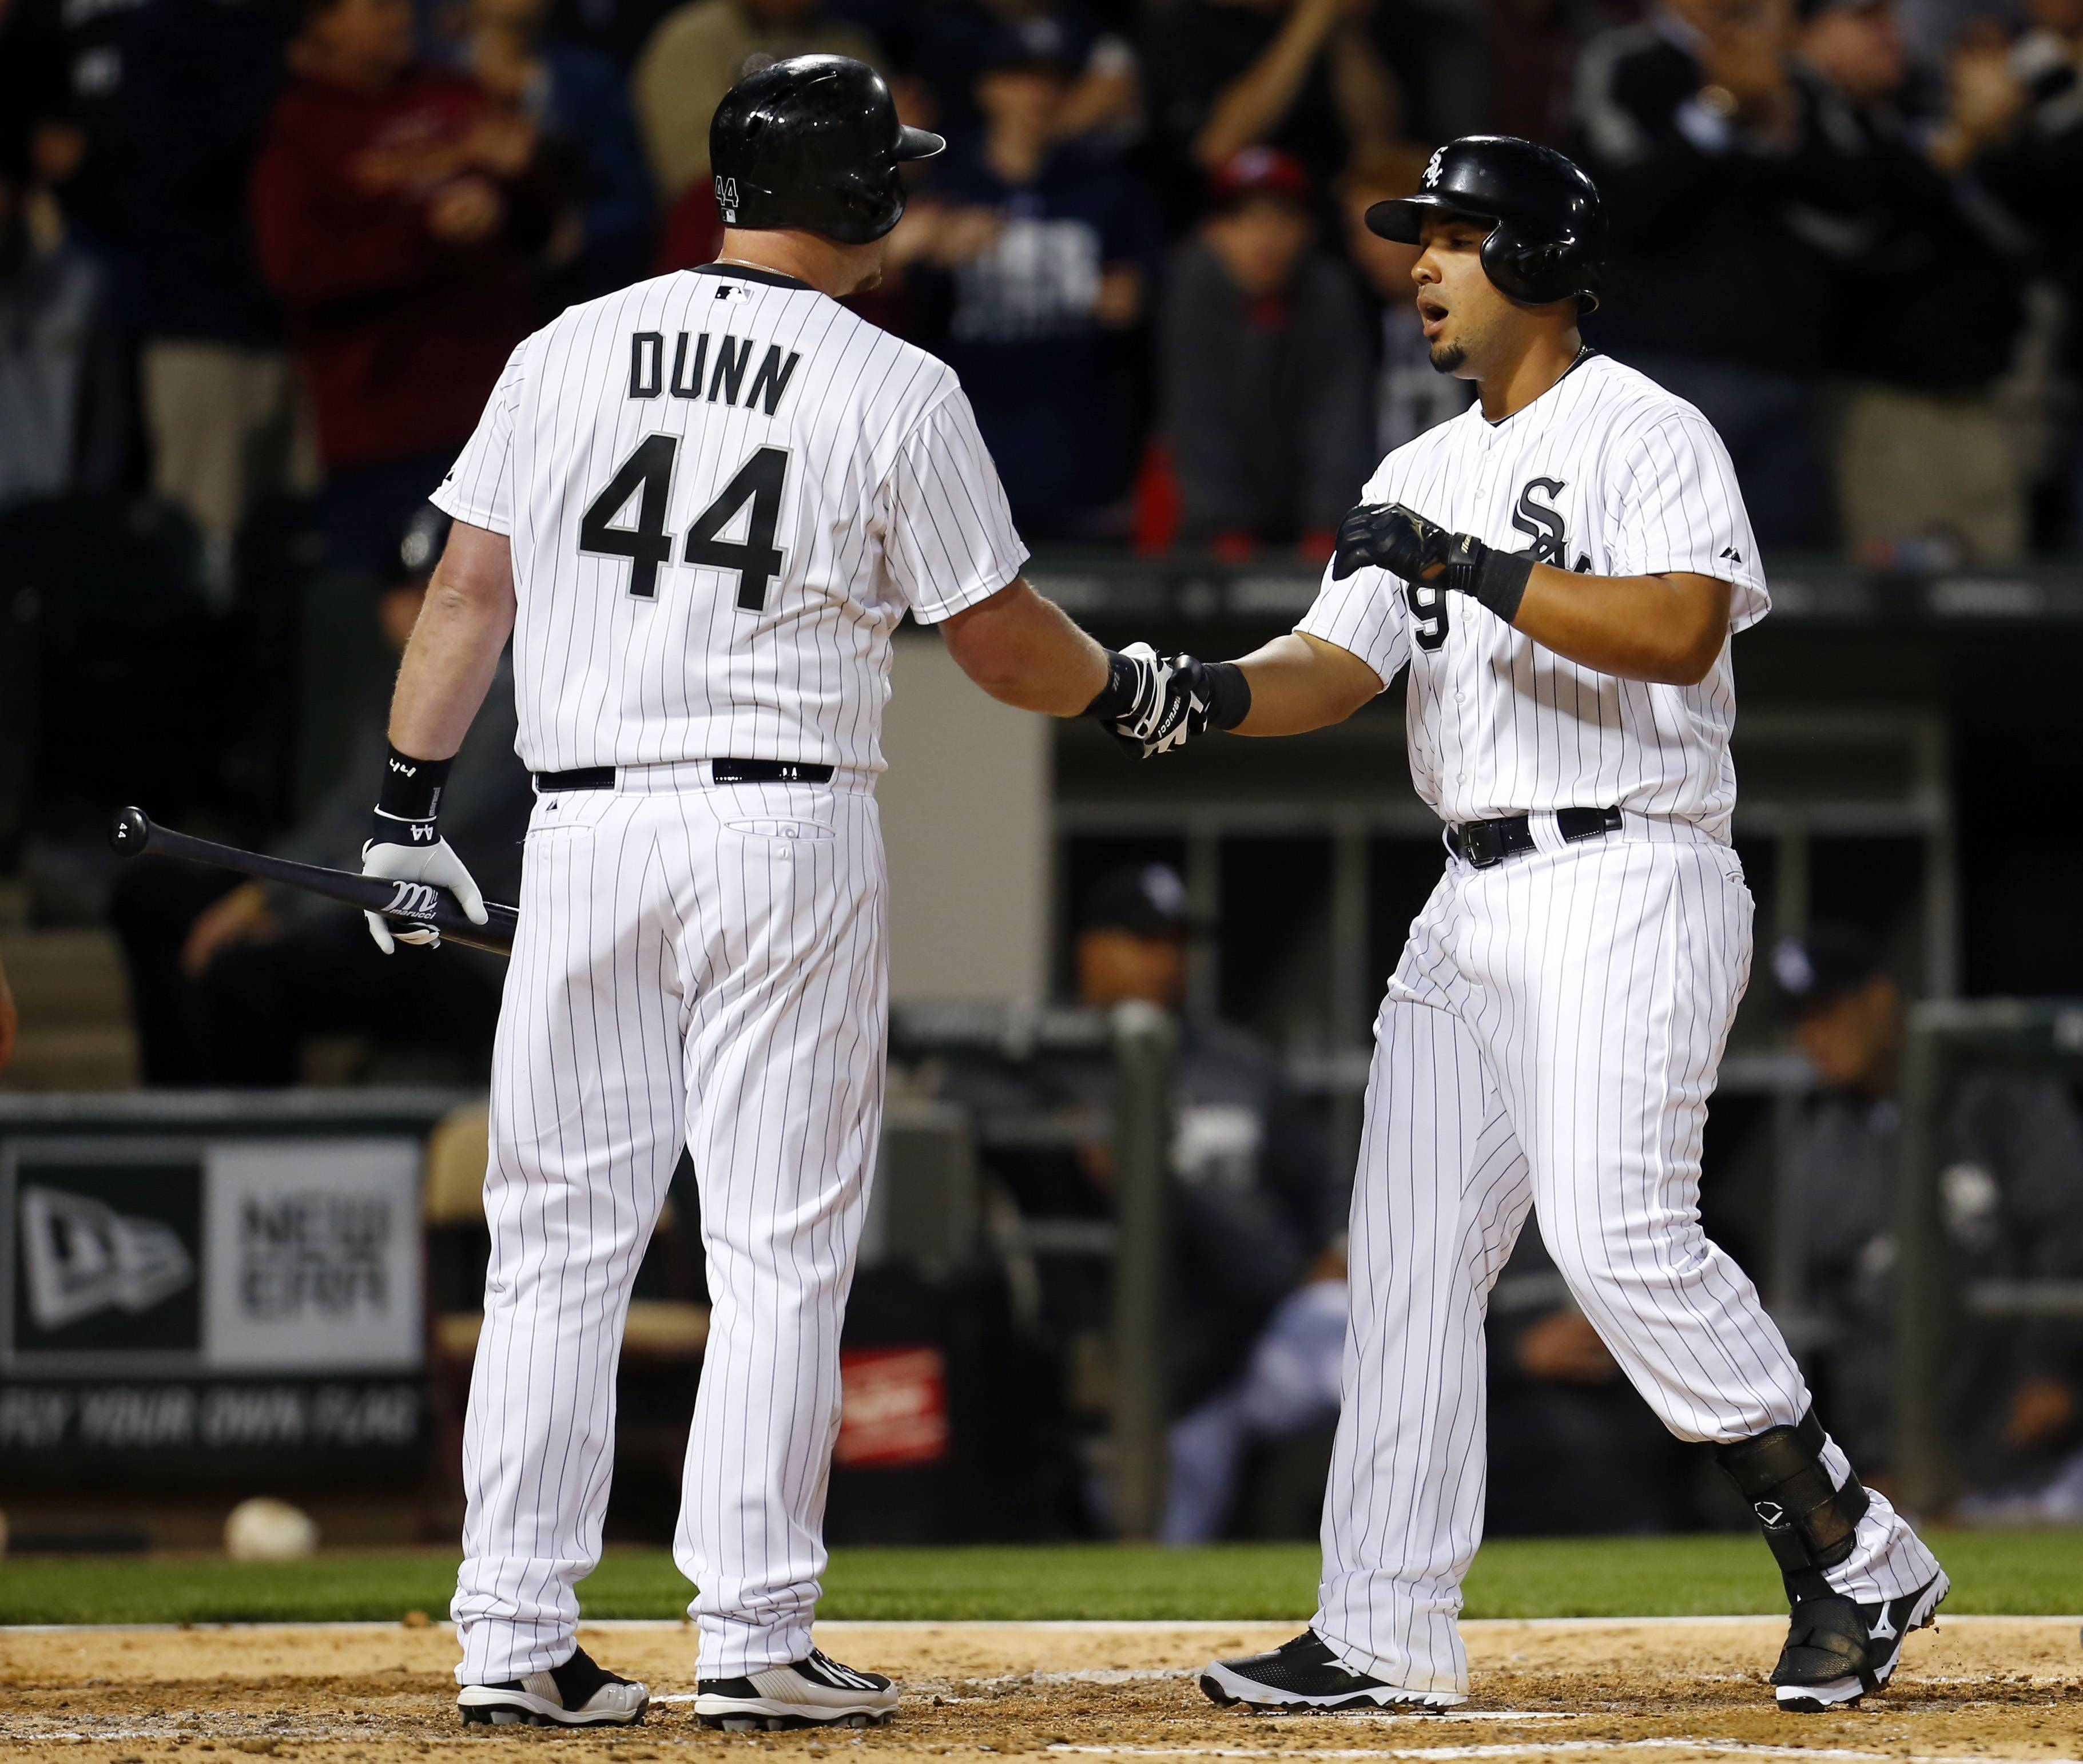 Win over Tigers a little sweeter for Sox